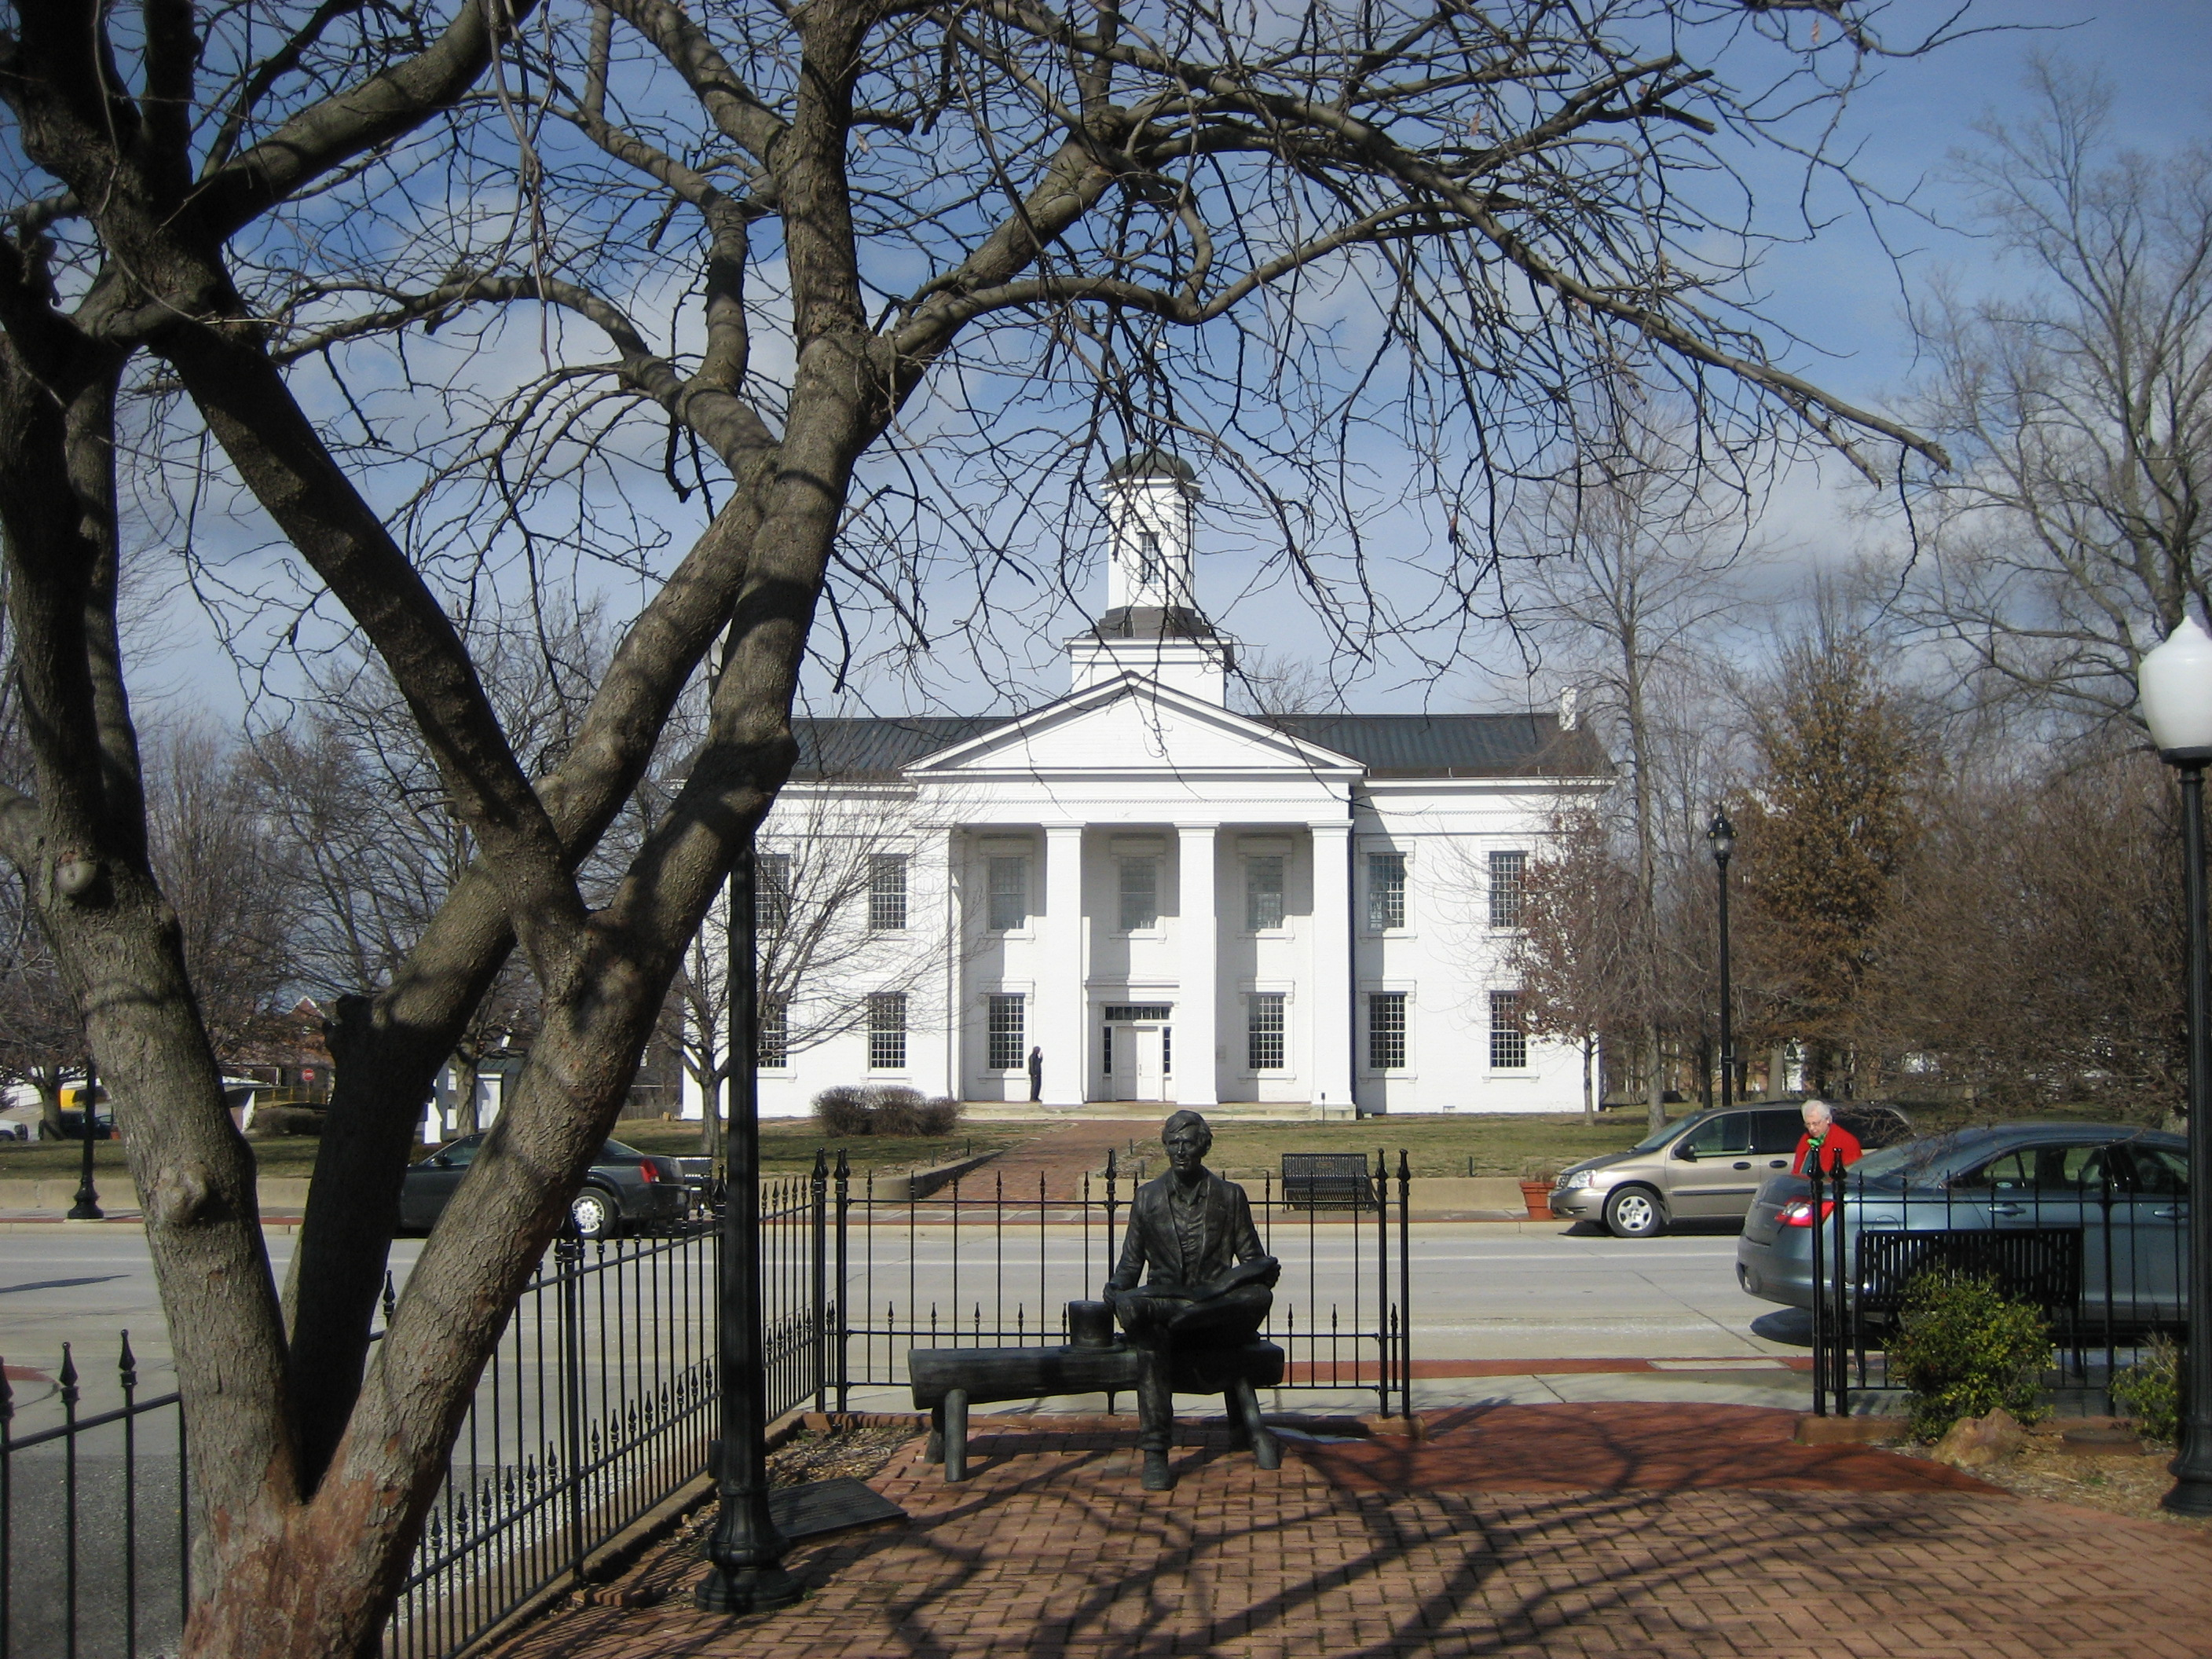 Road Trip Through History The Vandalia Statehouse State